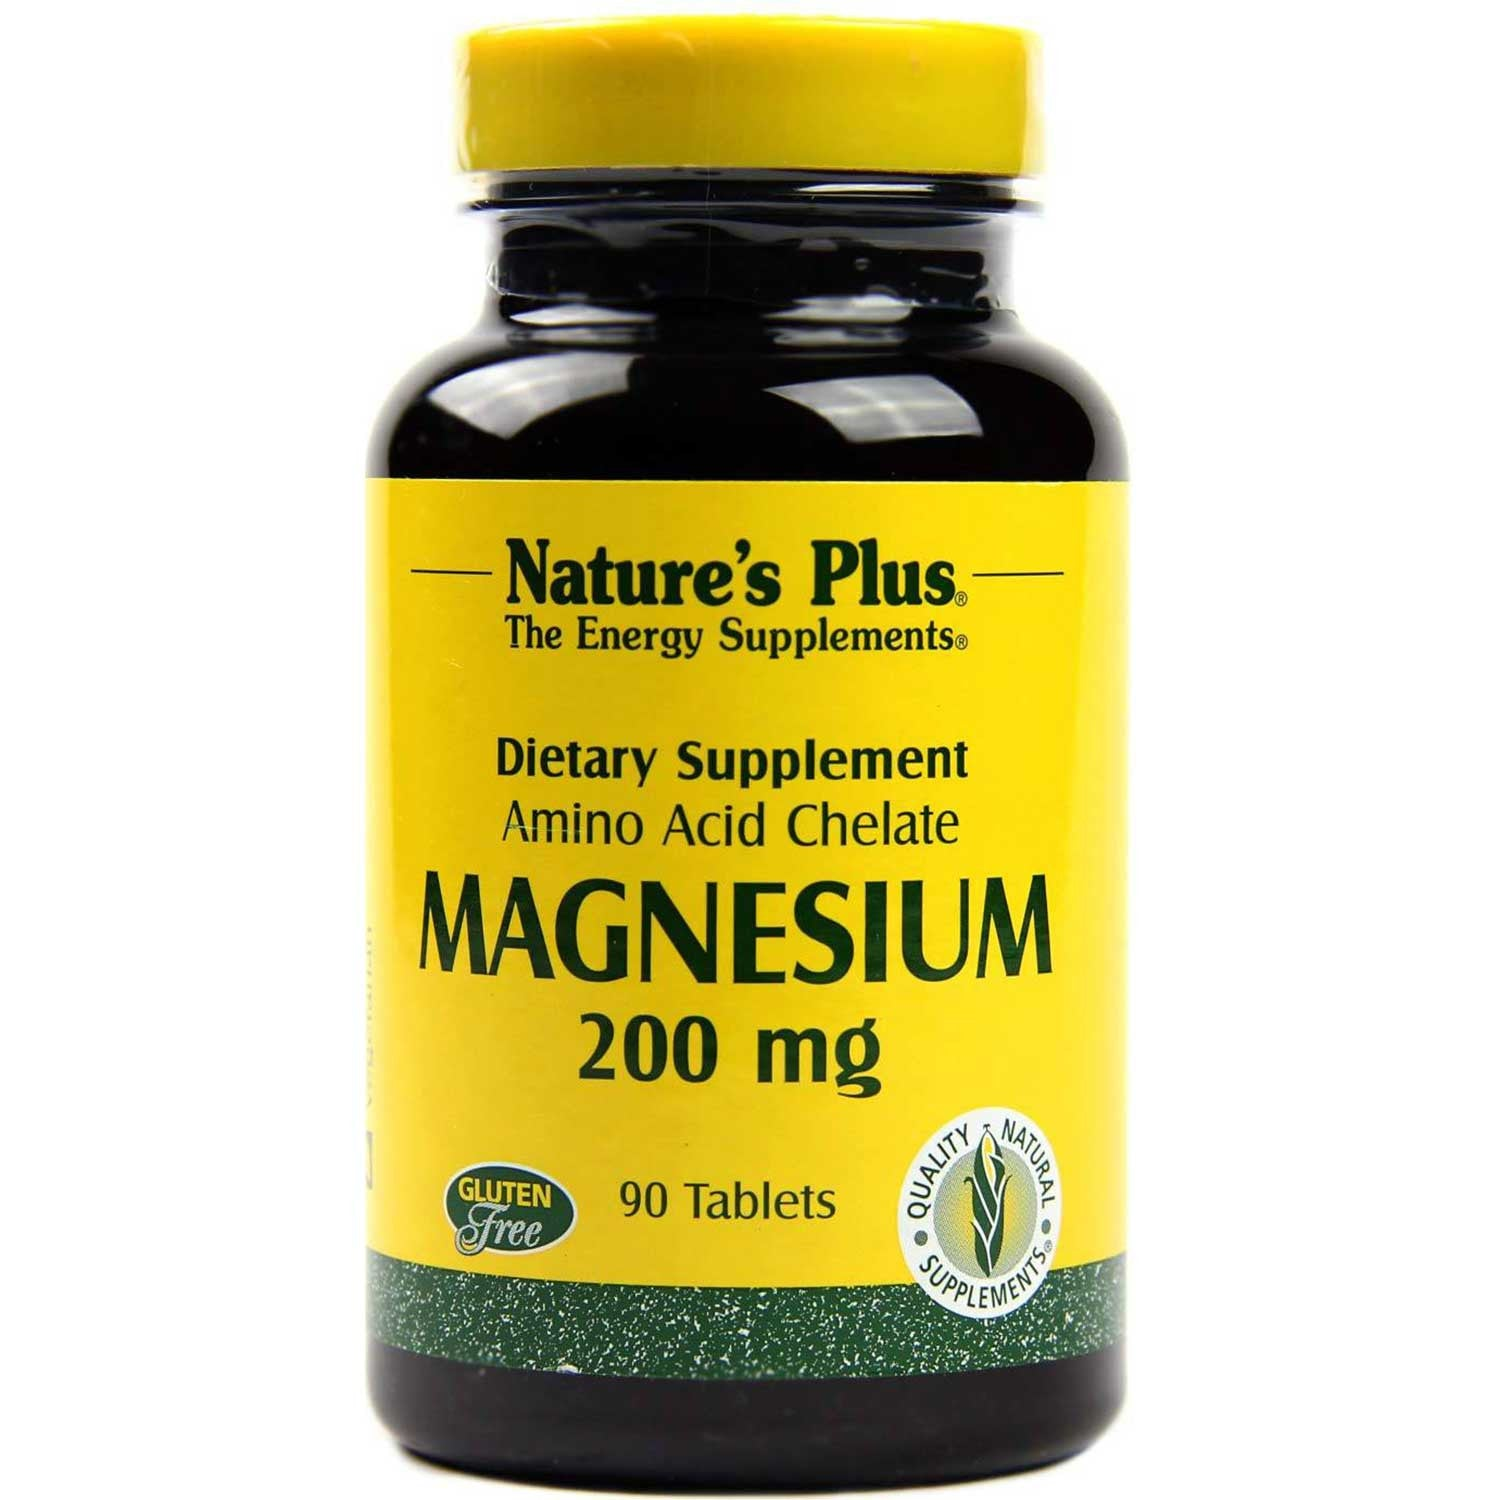 Natures plus Magnesium (Biotron Amino Acid Chelate) 200 mg, 90 tabs.